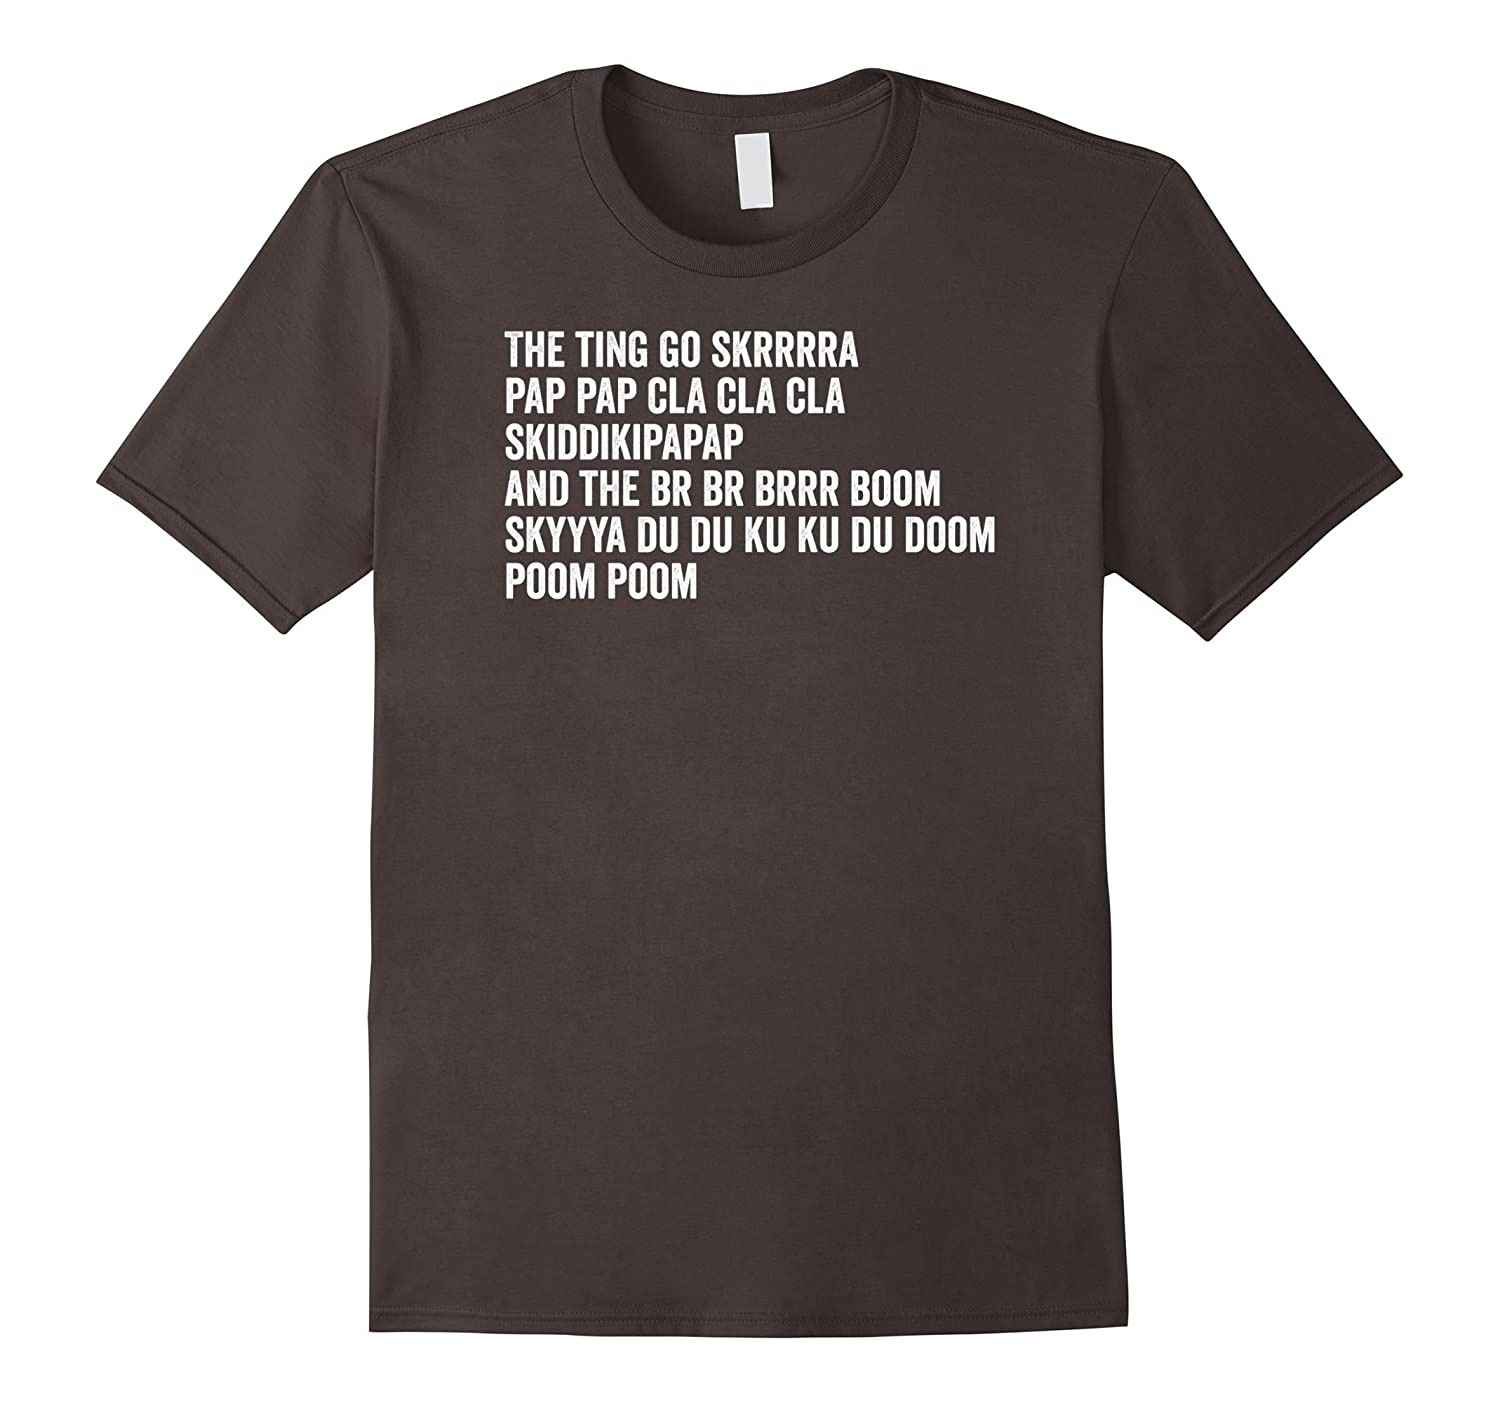 The Ting Go Skrrra T Shirt - Fire In The Booth Mans Not Hot-TJ